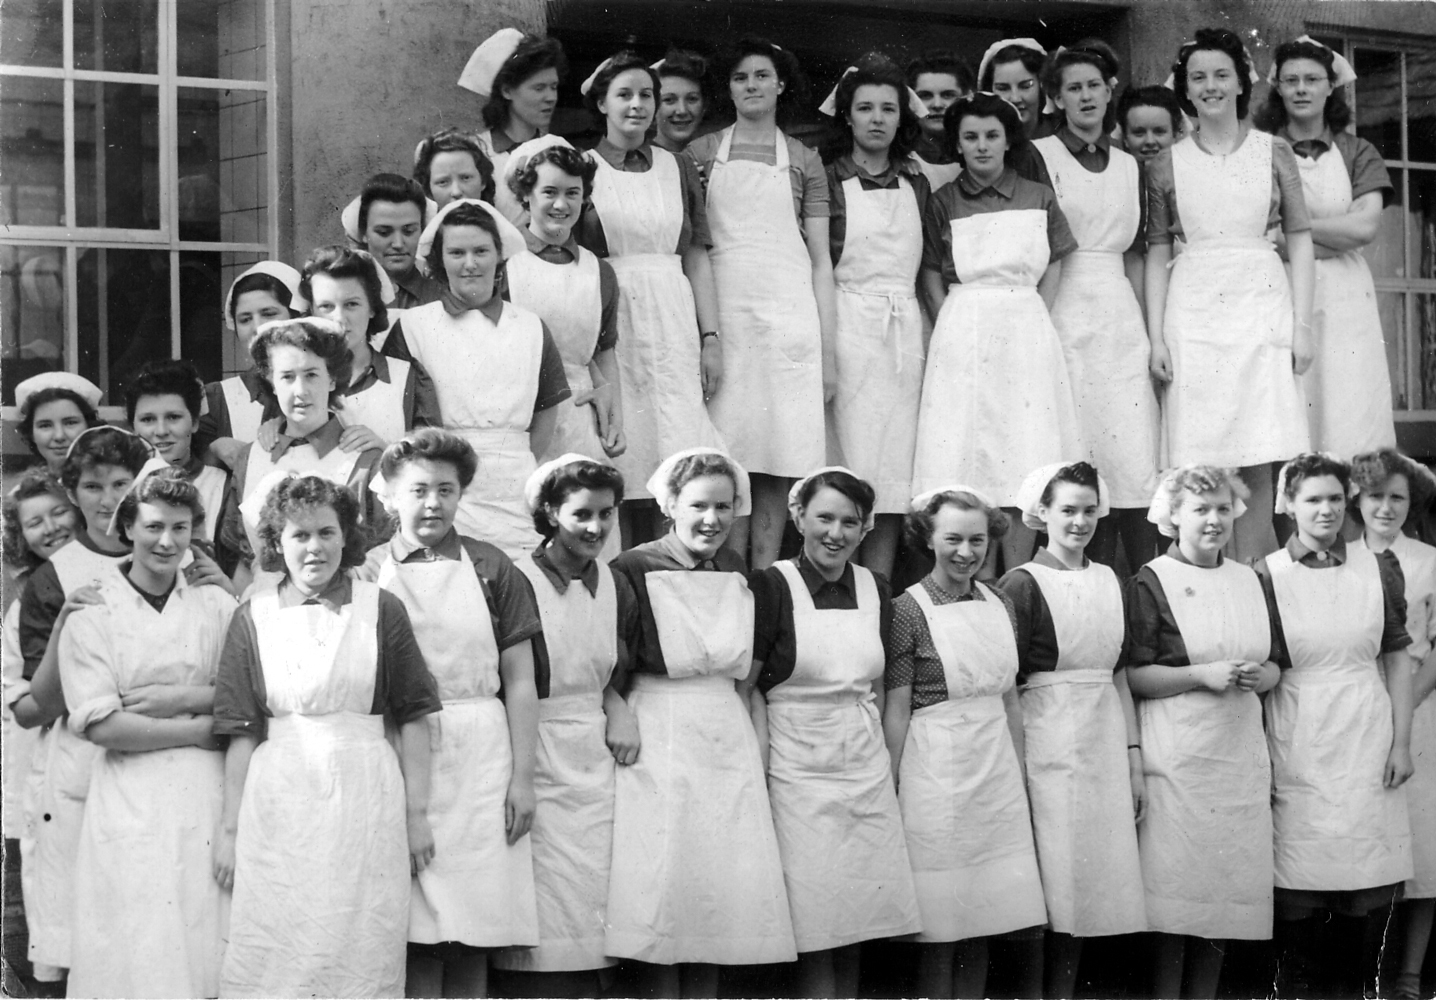 Dairy Workers Standing Outside Dairy Building, late 1940s